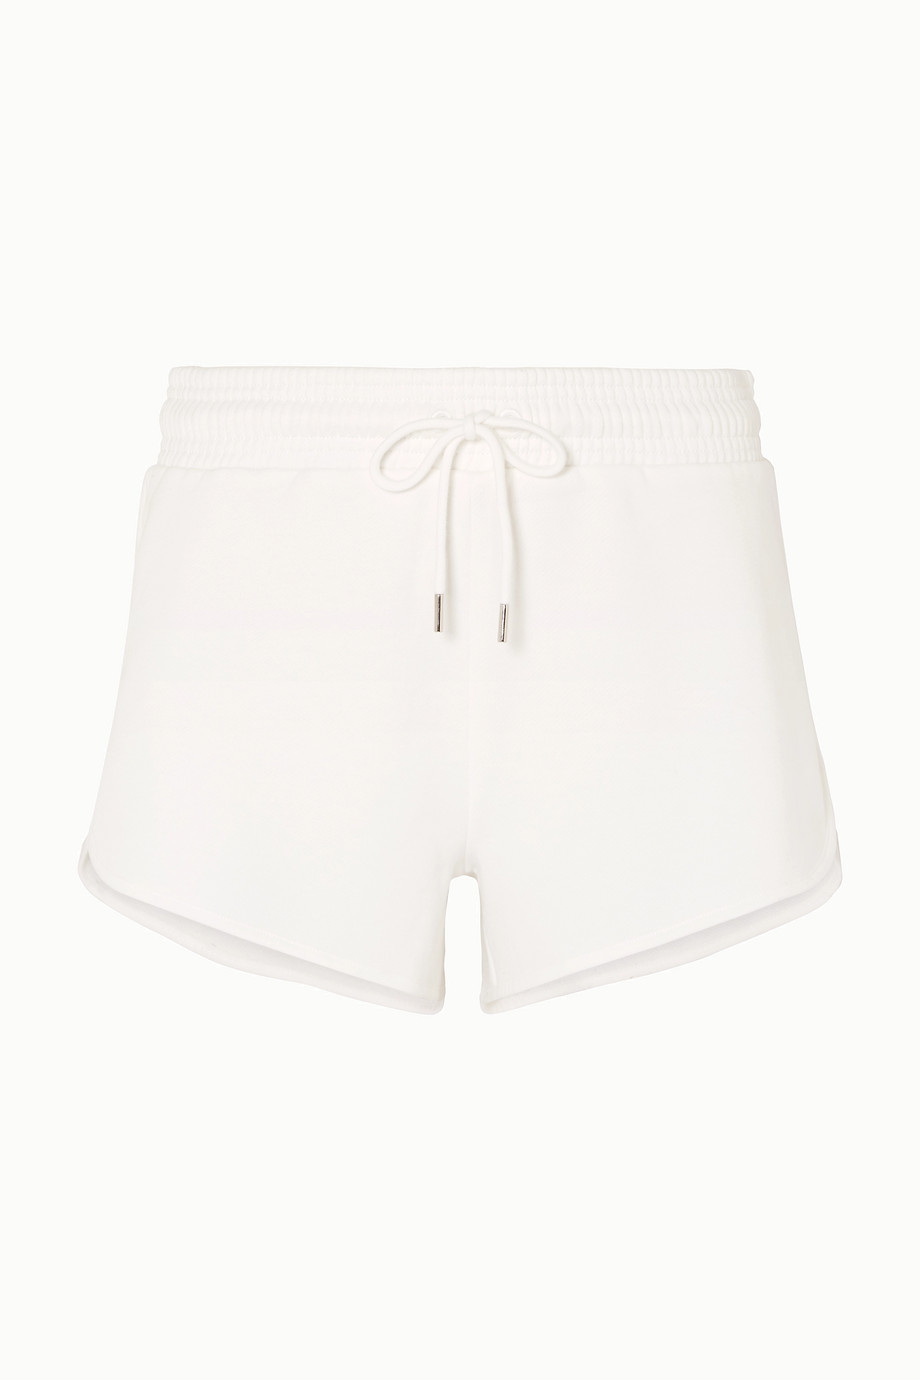 Ninety Percent + NET SUSTAIN organic cotton-jersey shorts